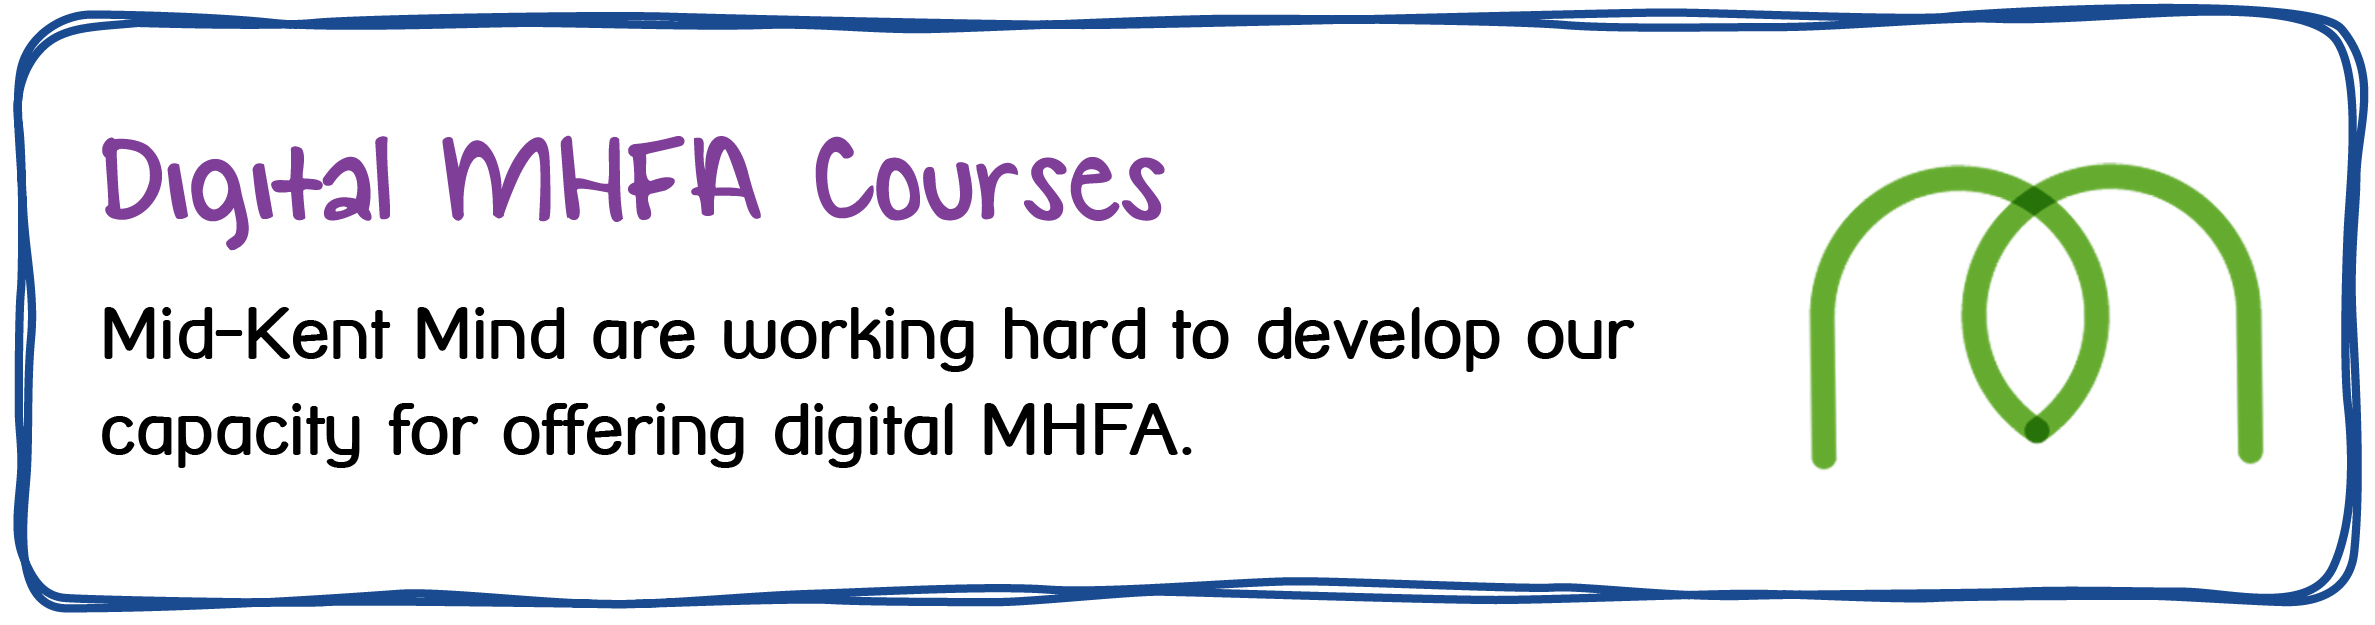 Digital MHFA Courses. Mid-Kent Mind are working hard to develop our capacity for offering digital MHFA.